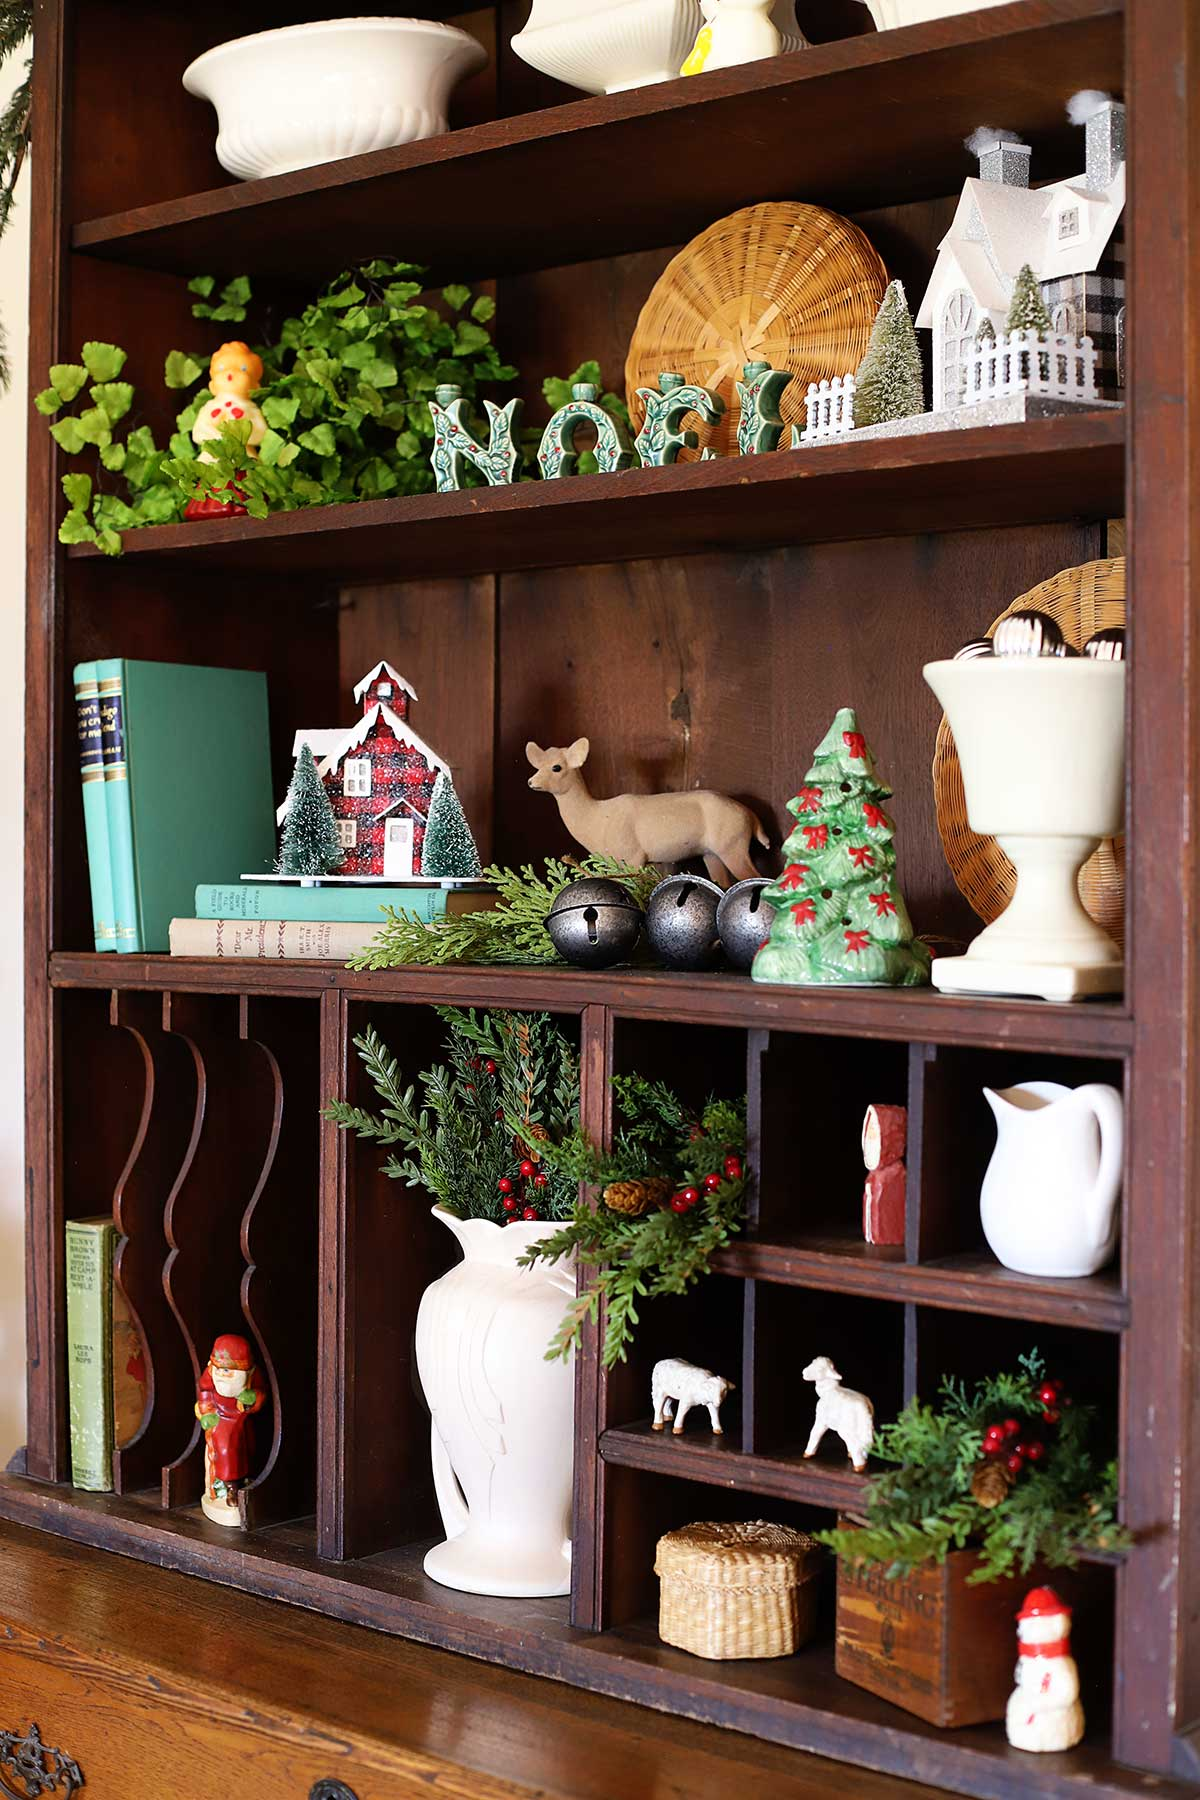 decorating the hutch with vintage Christmas decor